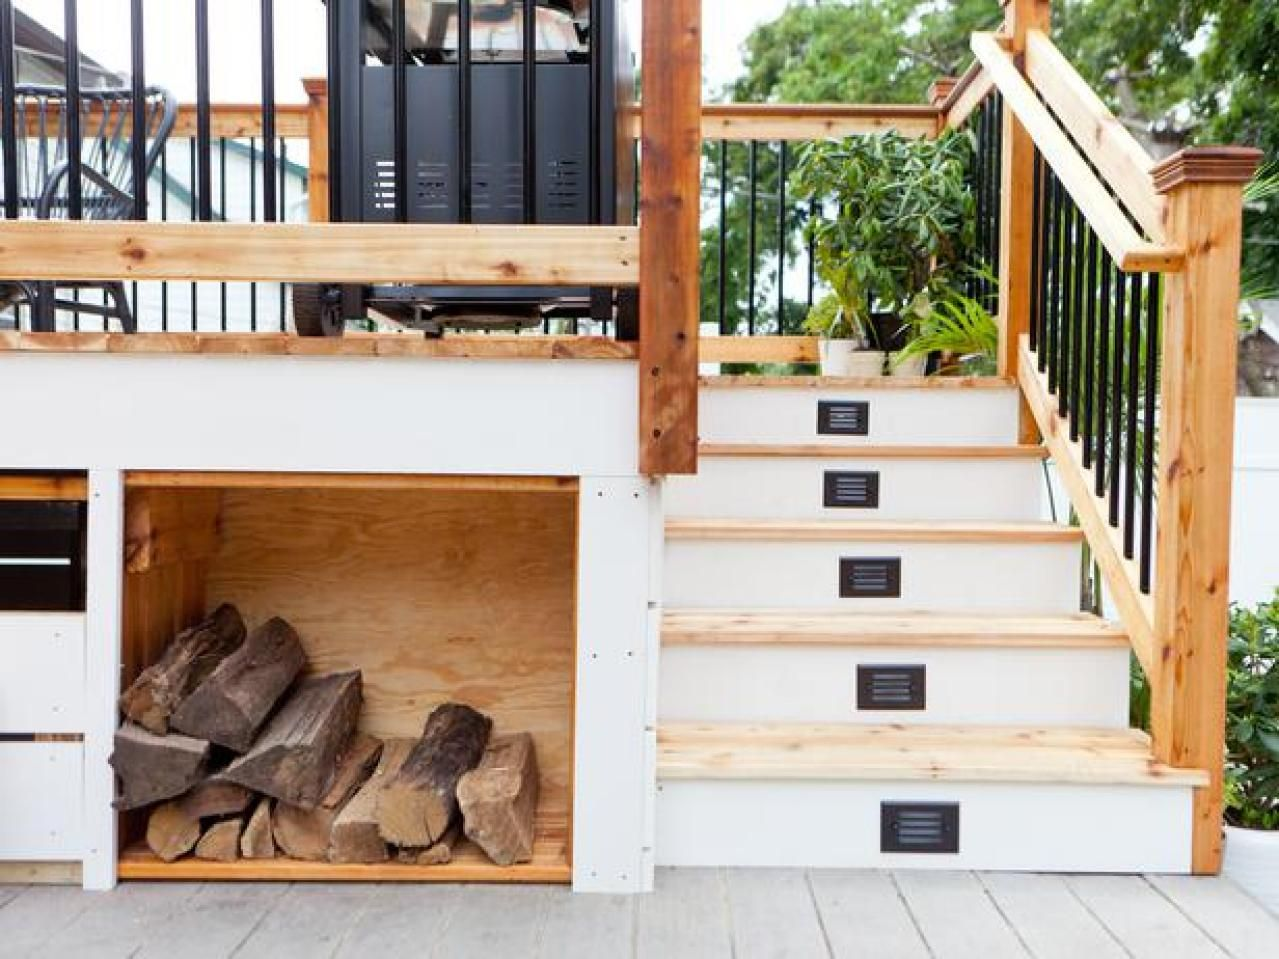 Smart U0026 Sneaky Storage Solutions: Outdoor Project Ideas